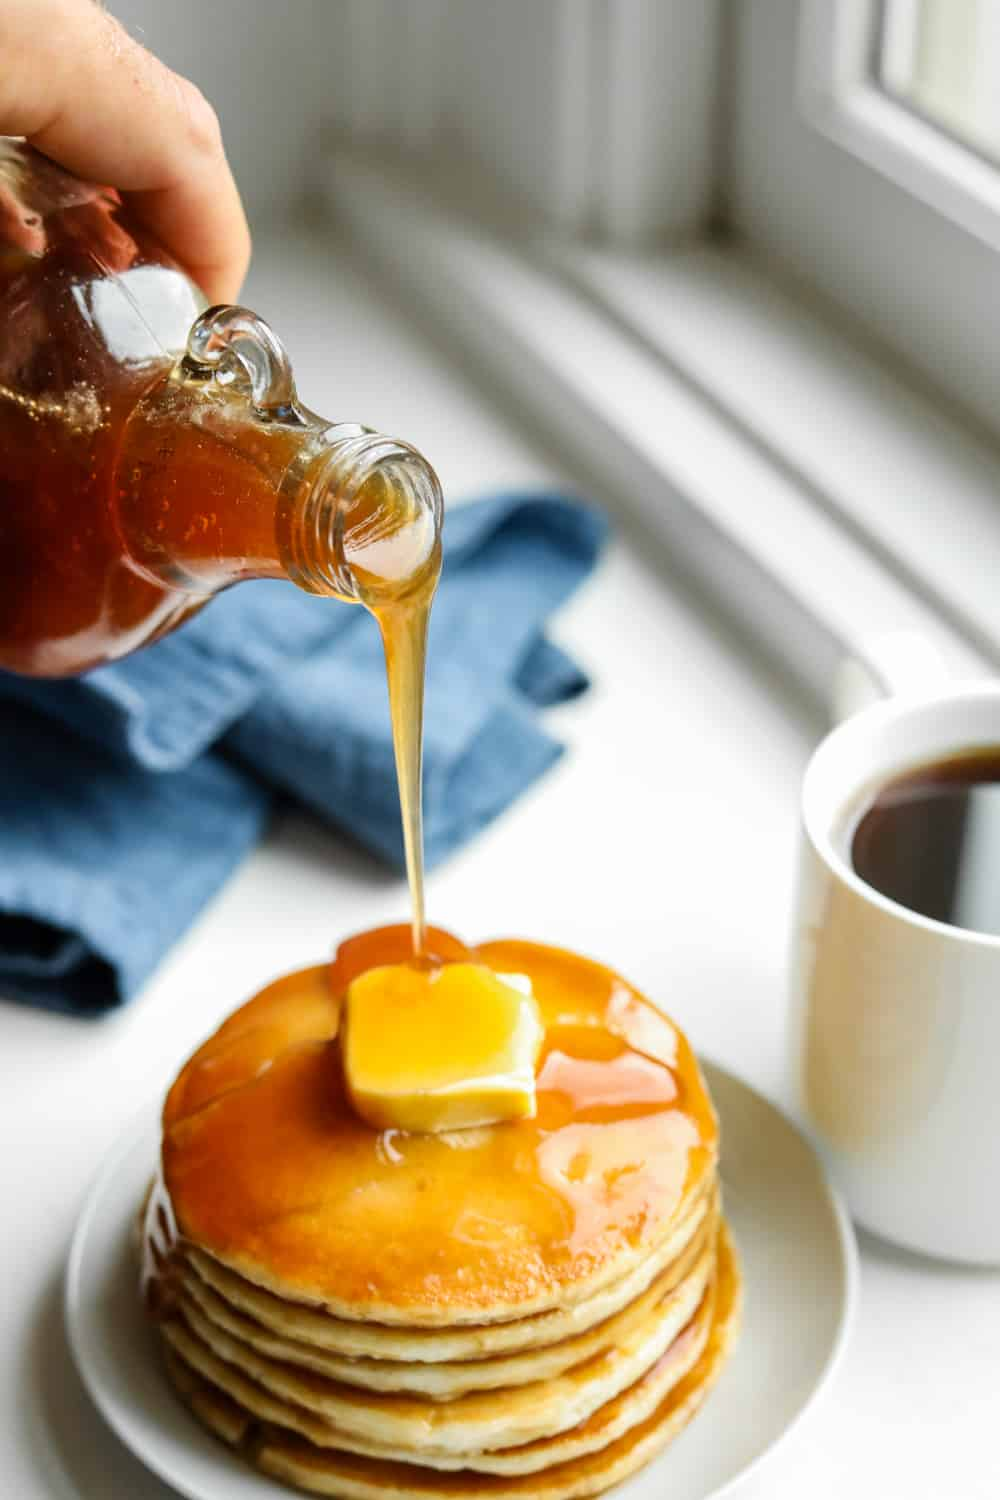 A hand holding a bottle of maple syrup and pouring it over a stack of pancakes.